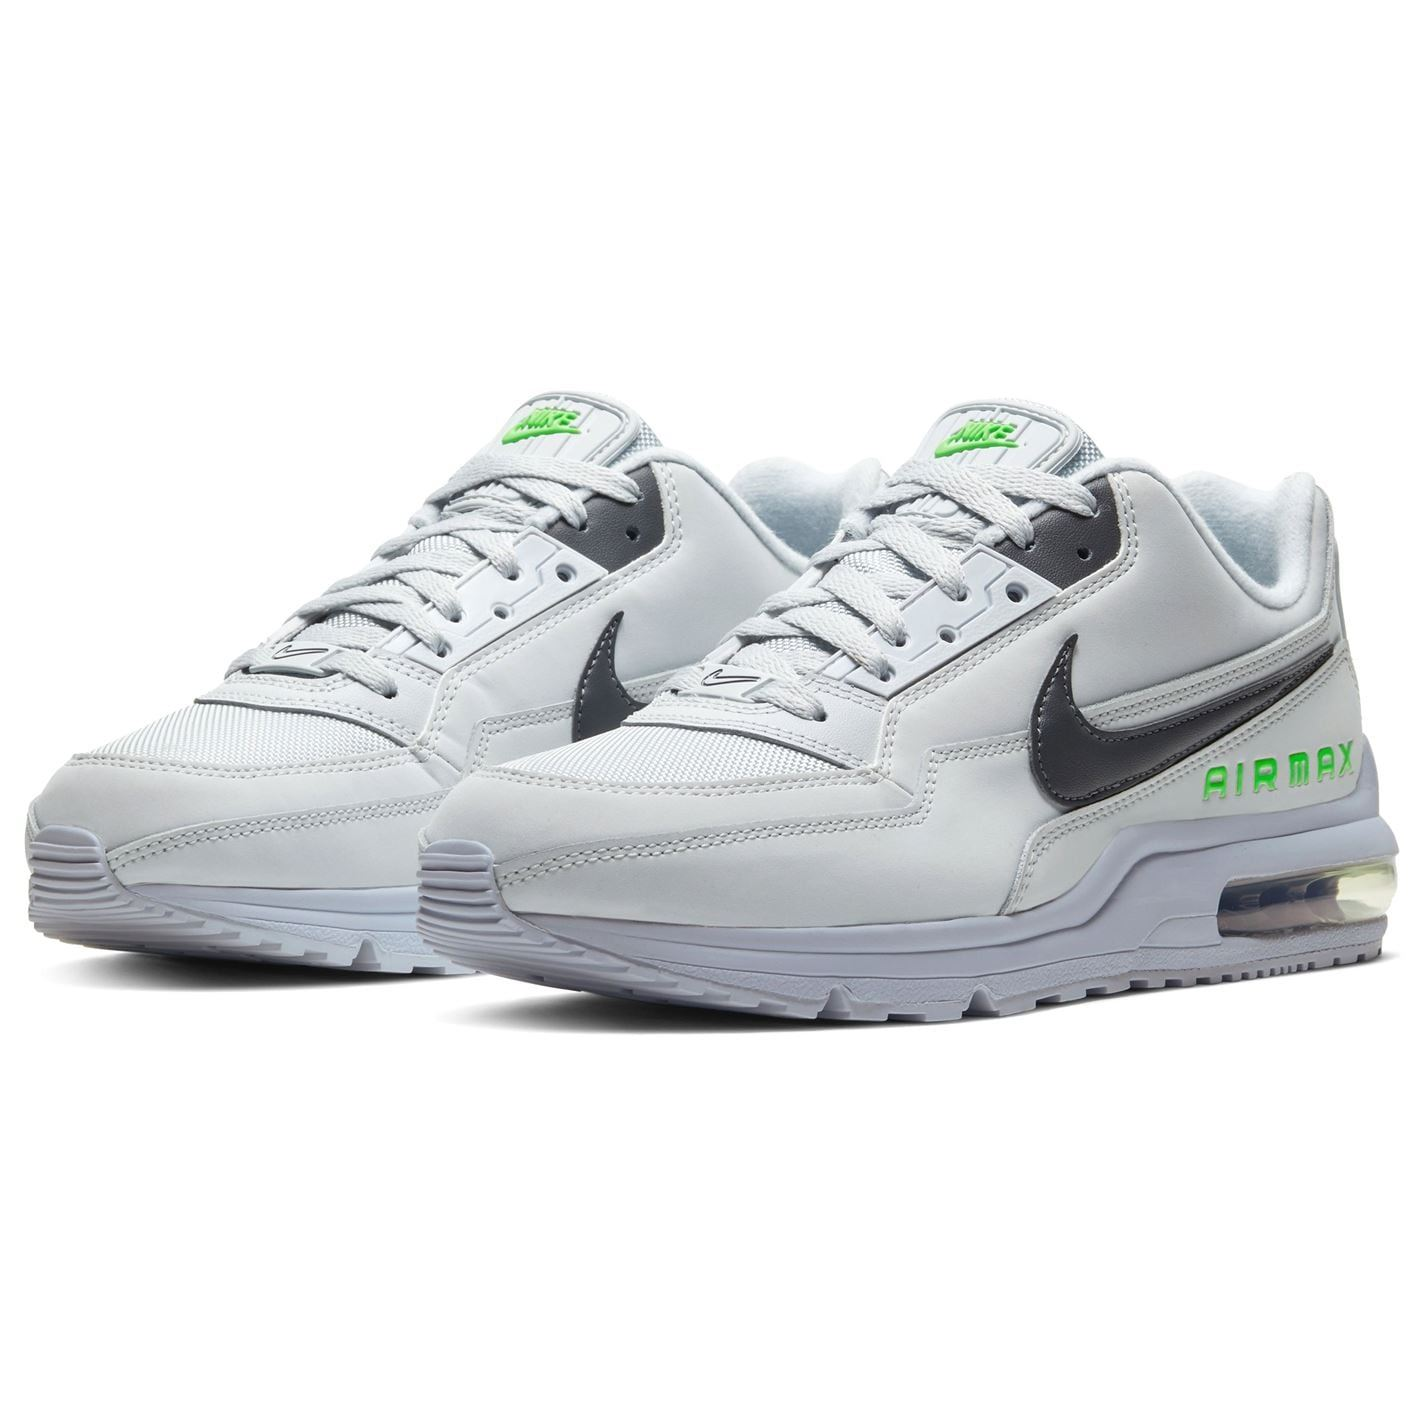 clearance prices biggest discount clearance prices Nike Air Max LTD 3 Trainers Mens Platinum/Grey Athleisure ...